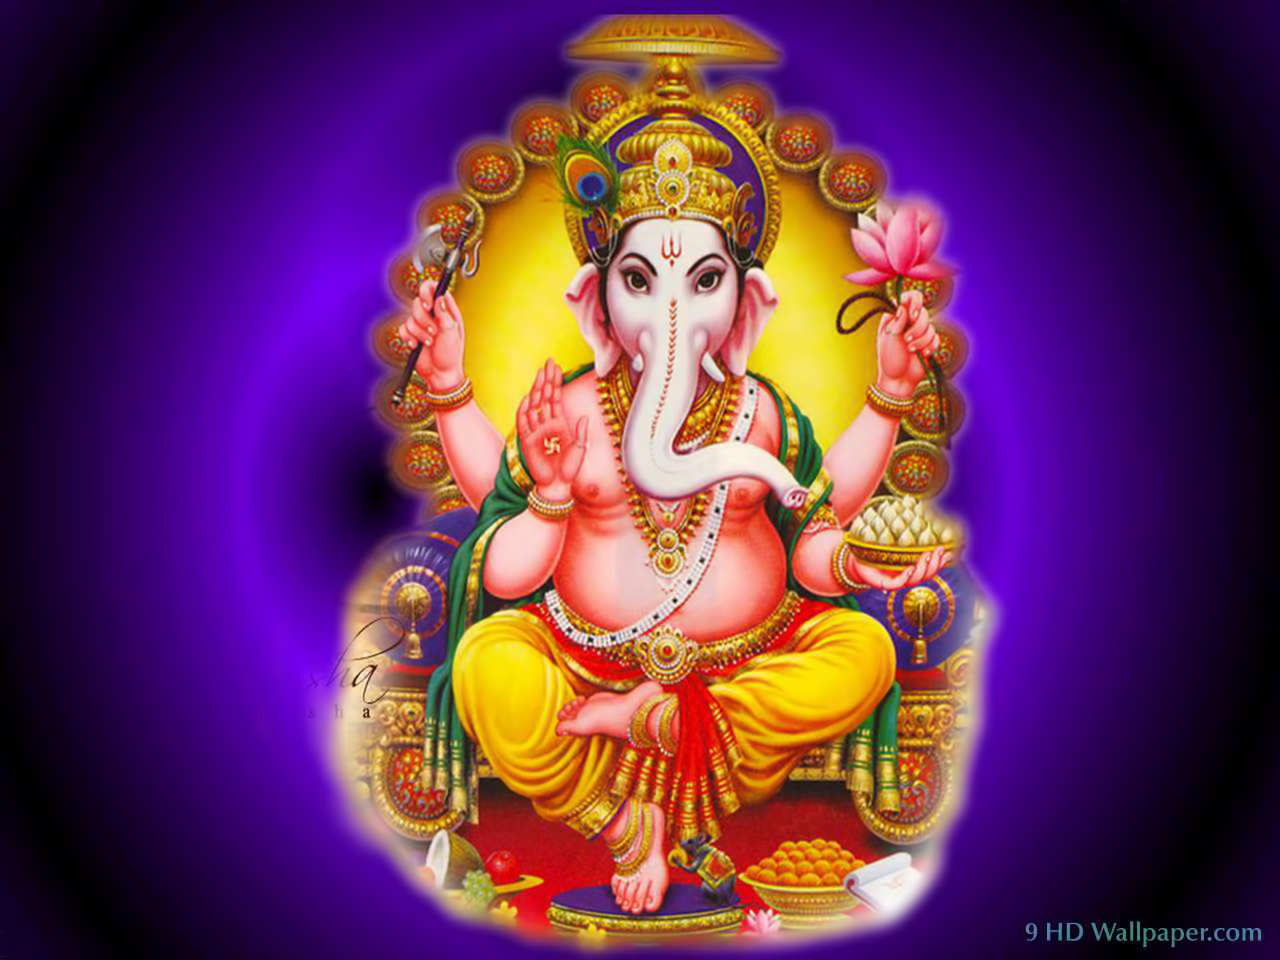 25 Best Ganesha Wallpapers - Series 2